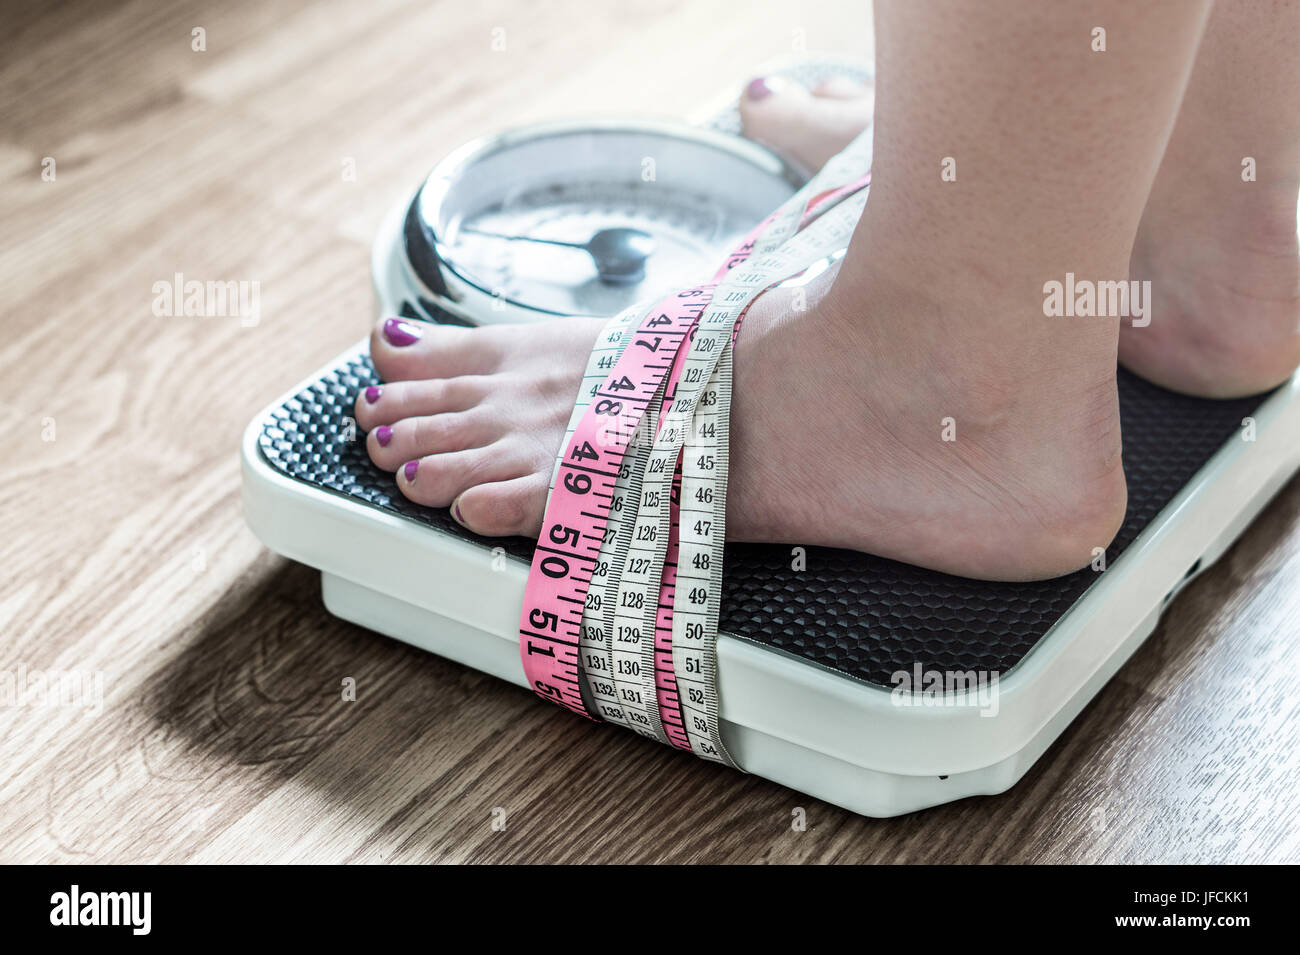 Feet tied up with measuring tape to a weight scale. Addiction and obsession to weight loss. Anorexia and eating - Stock Image